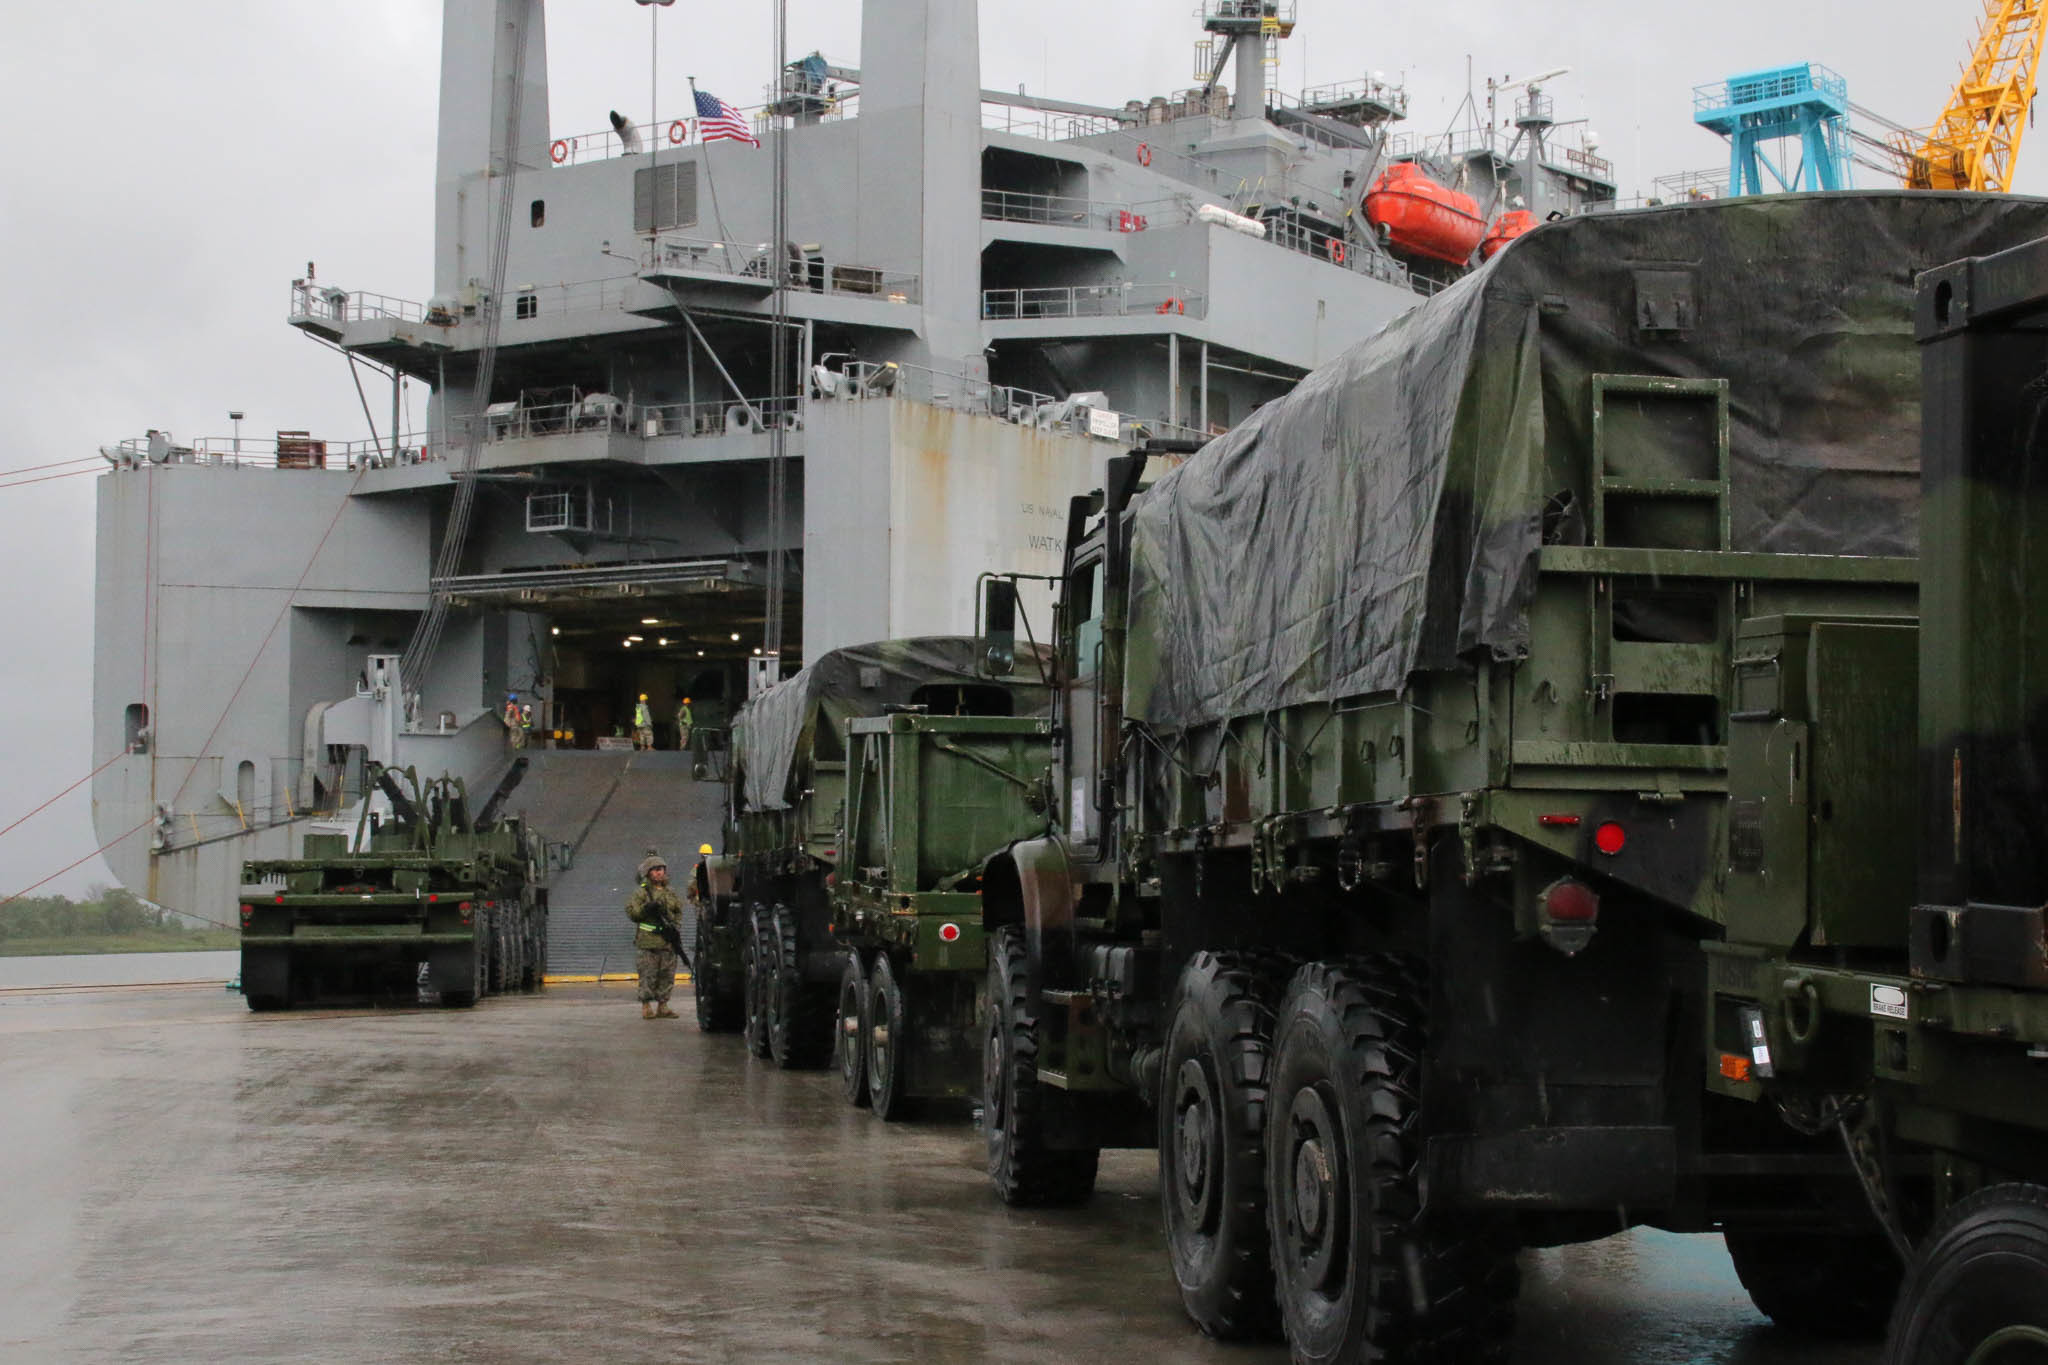 Soldiers and Marines load equipment aboard the USNS Watkins in preparation for Resolute Sun 2019's joint logistics over-the-shore scenario outside of Norfolk, Va. (Steven J. Mirrer/U.S. Army)